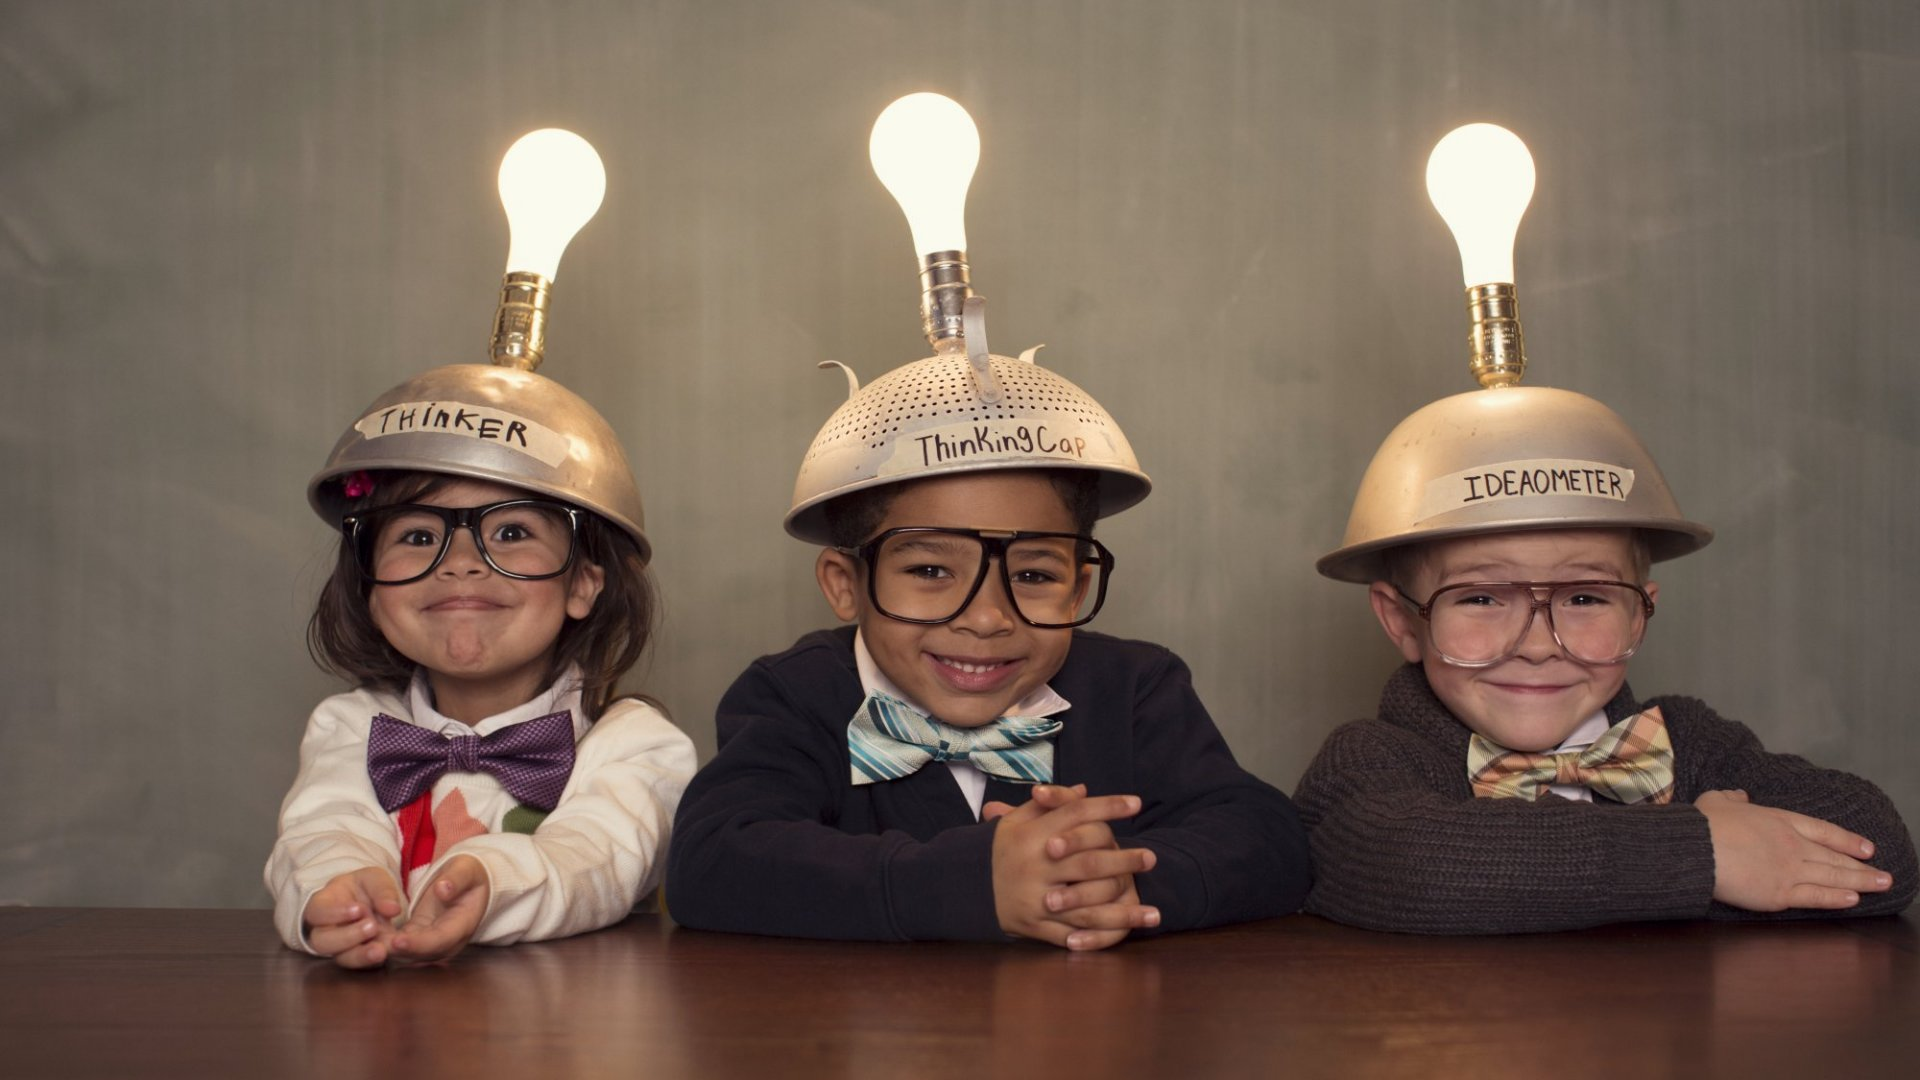 Science Says Doing This 1 Thing for Your Kids Will Make Them Better Problem-Solvers Forever